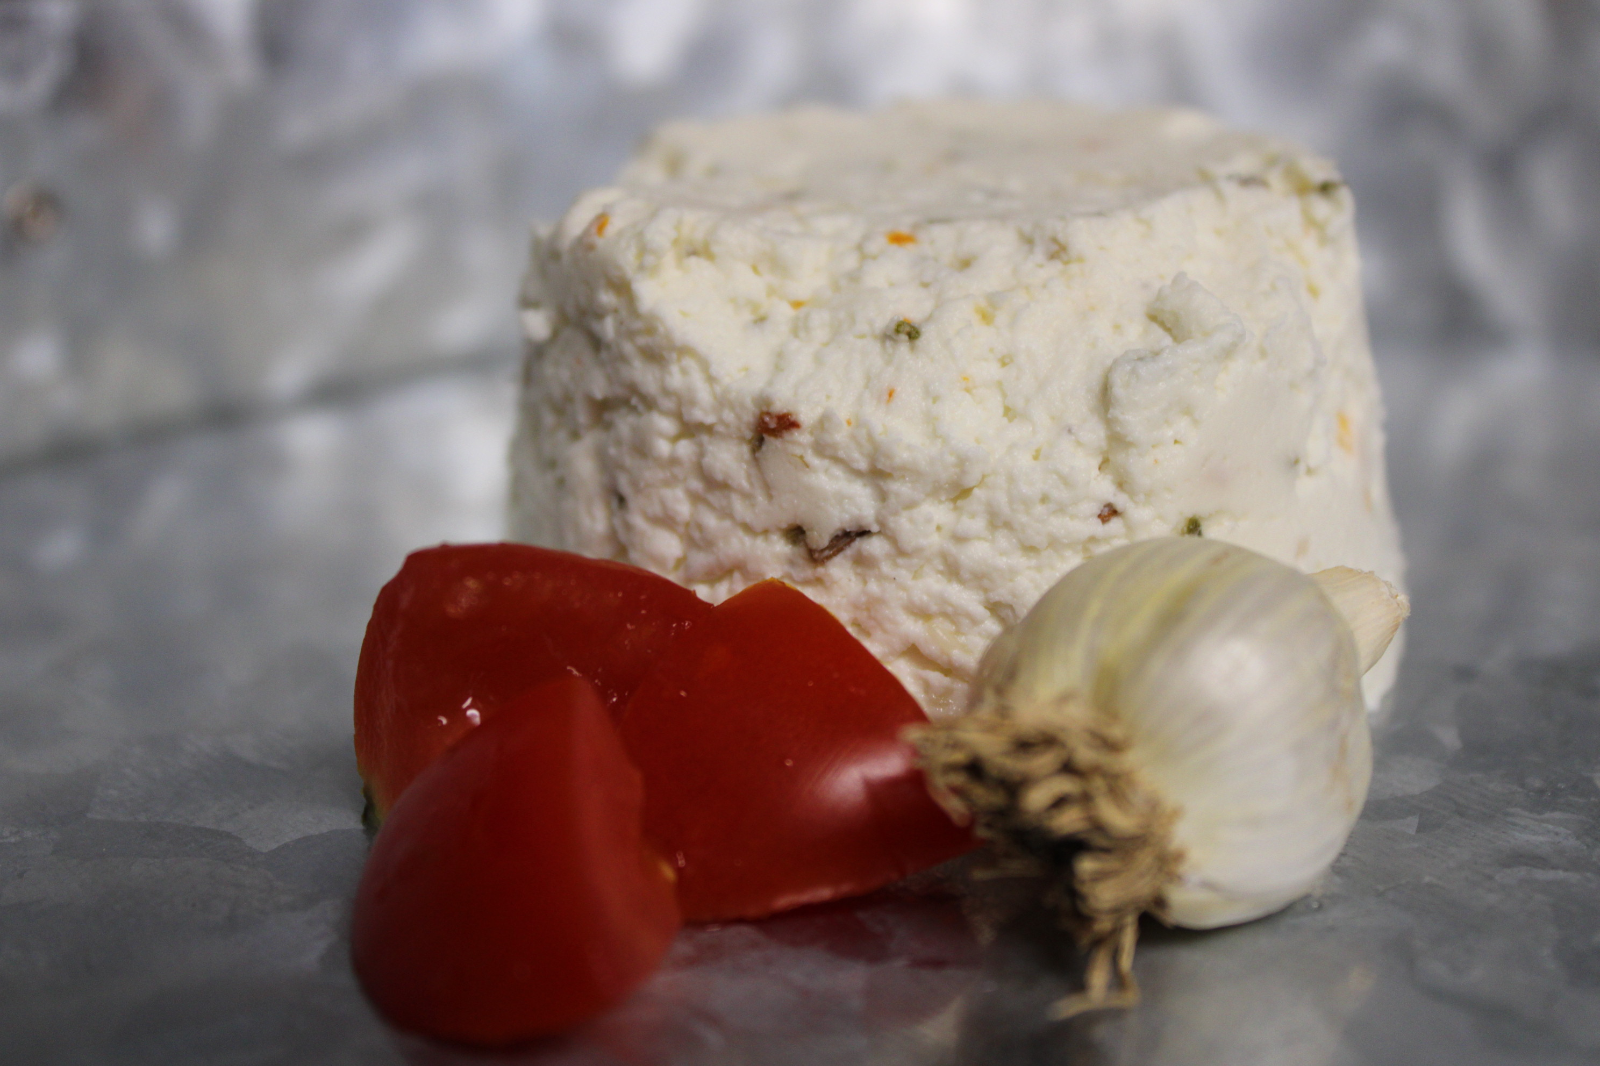 goat-cheese-chvre-tuscan-45oz